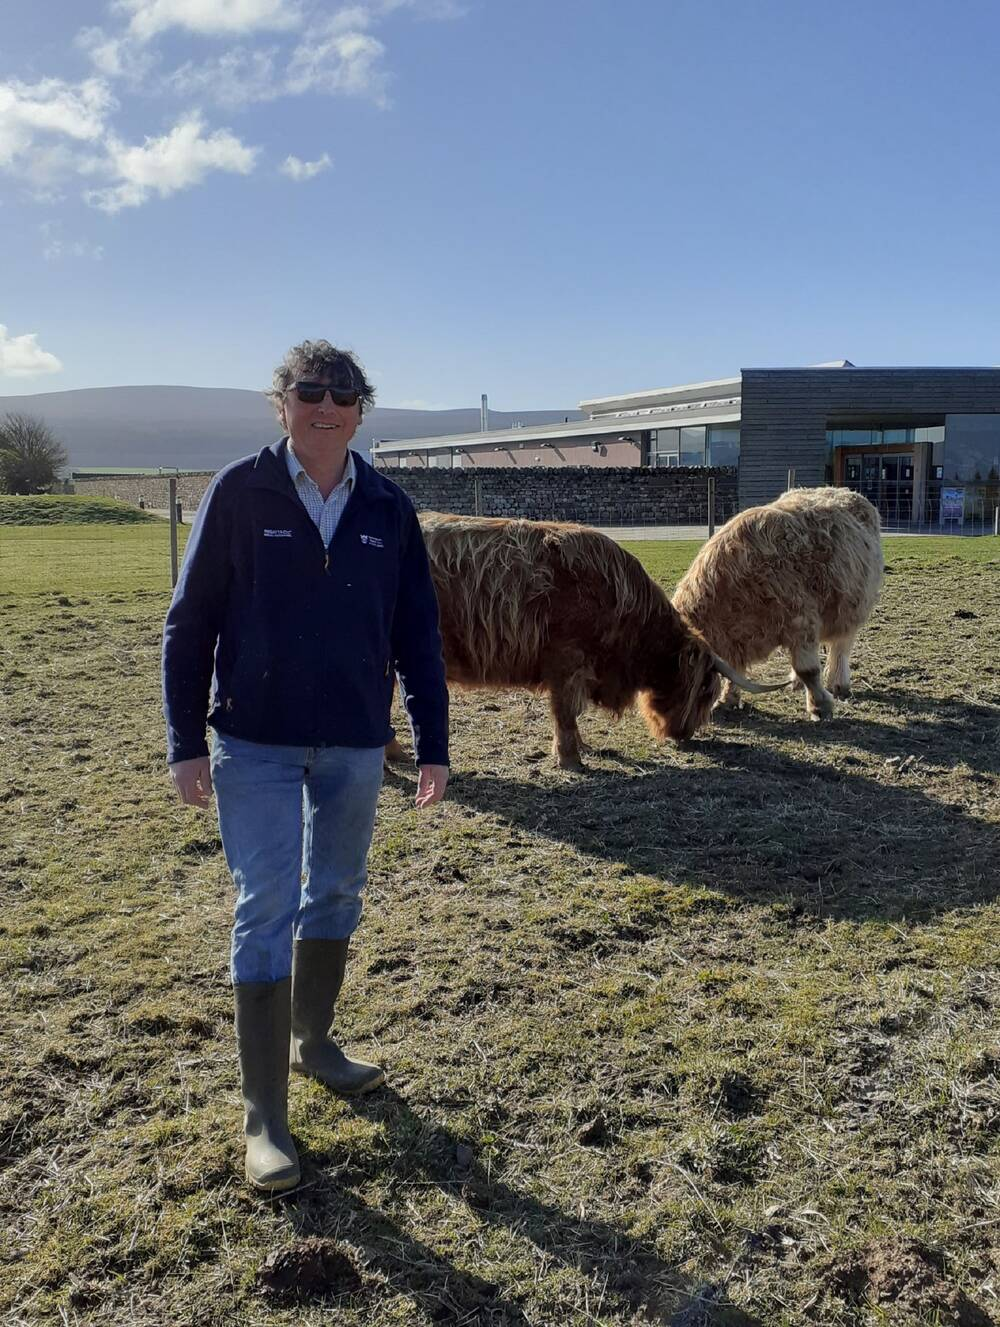 A National Trust for Scotland staff member stands in a fenced-off paddock with two grazing Highland cows. Culloden Visitor Centre can be seen in the background. It is a lovely sunny day.